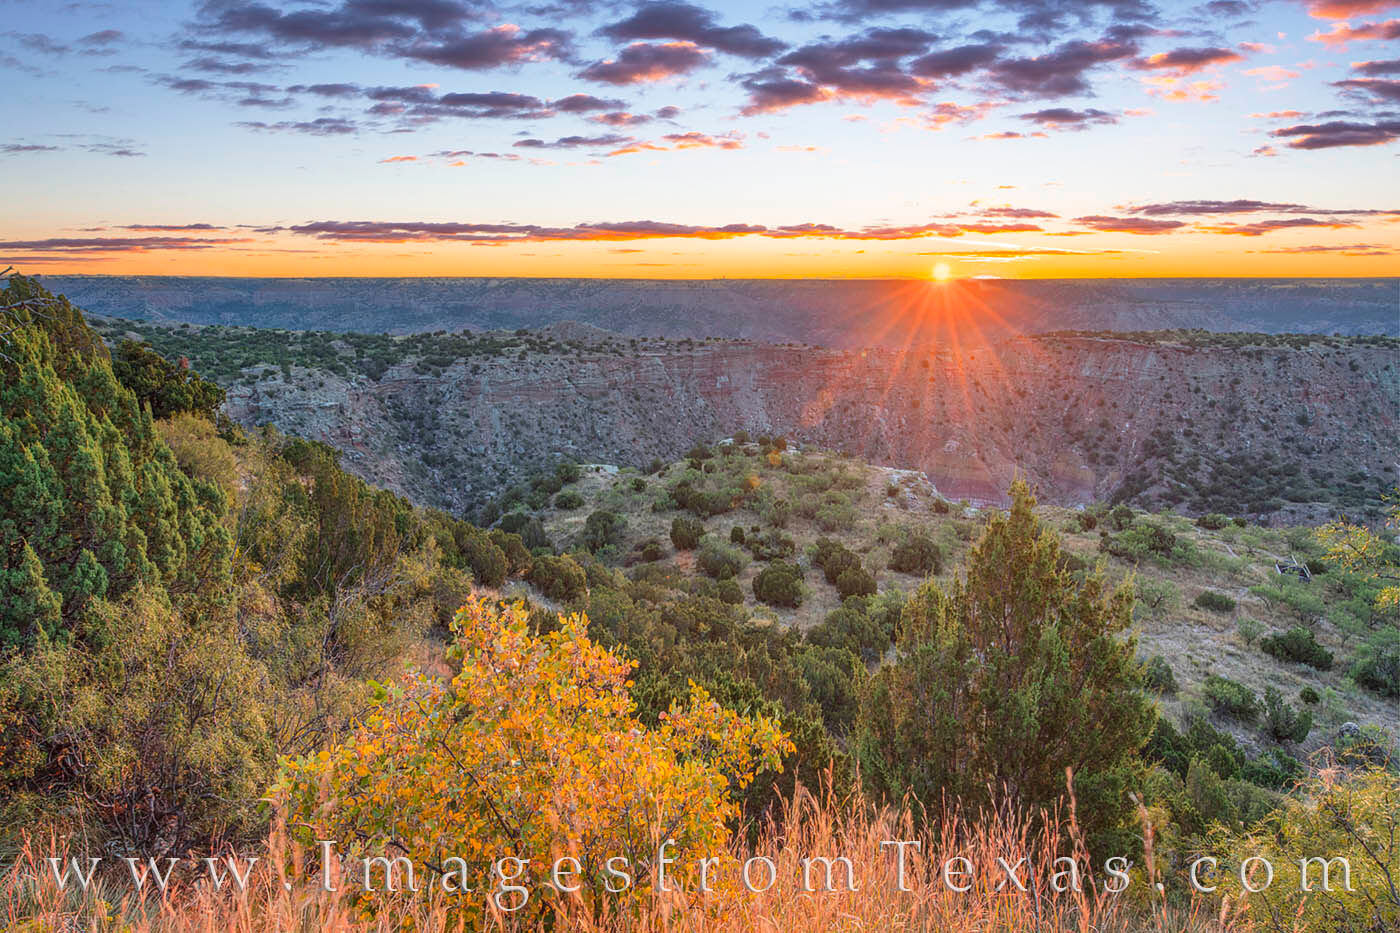 With a little touch of fall colors, this photograph shows a chilly late September sunrise looking over the famous Texas canyon...